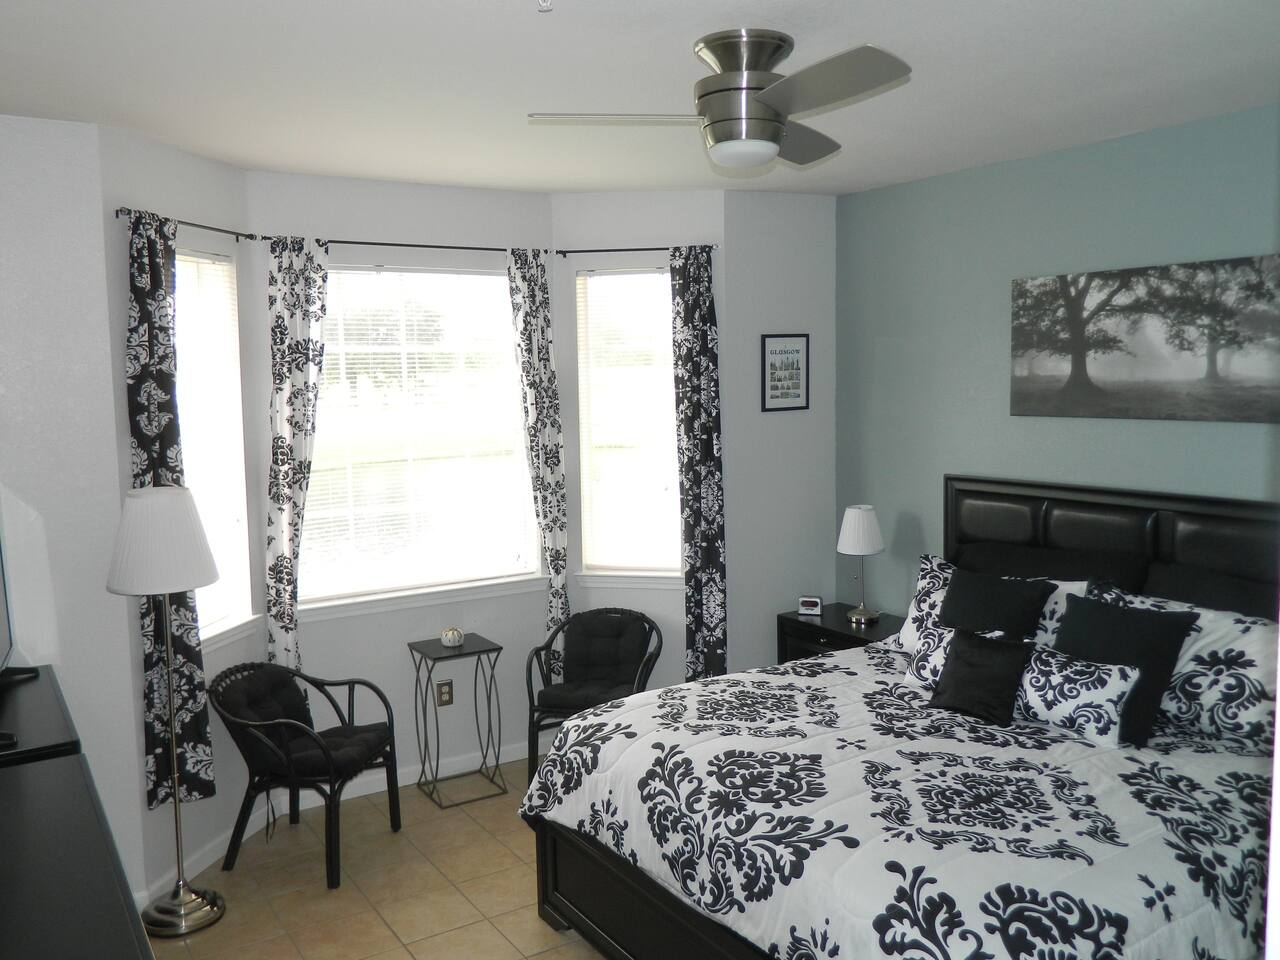 King size Master bedroom with seating and remote control fan